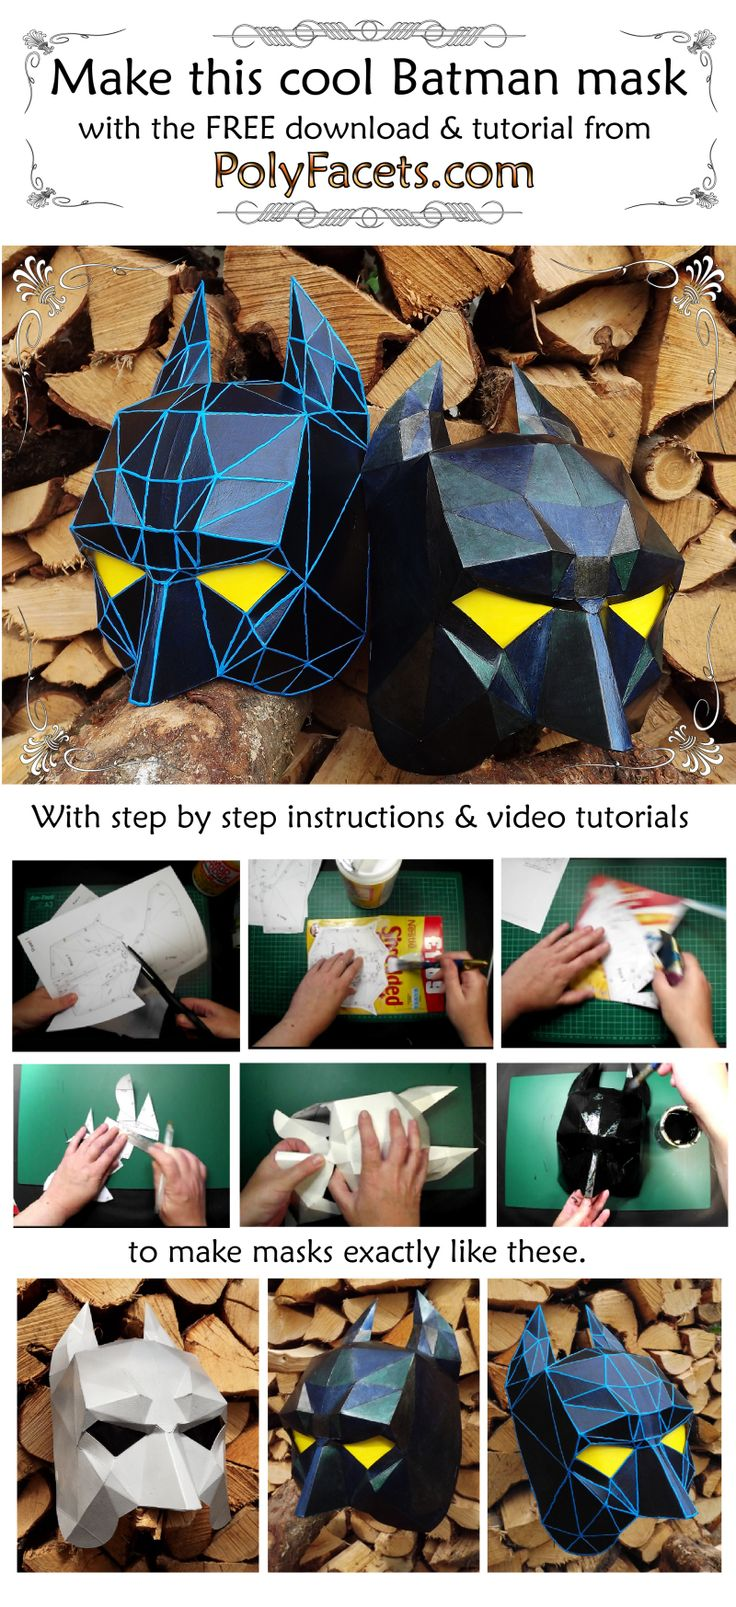 Batman Mask made with the Free Tutorial  and Download from PolyFacets